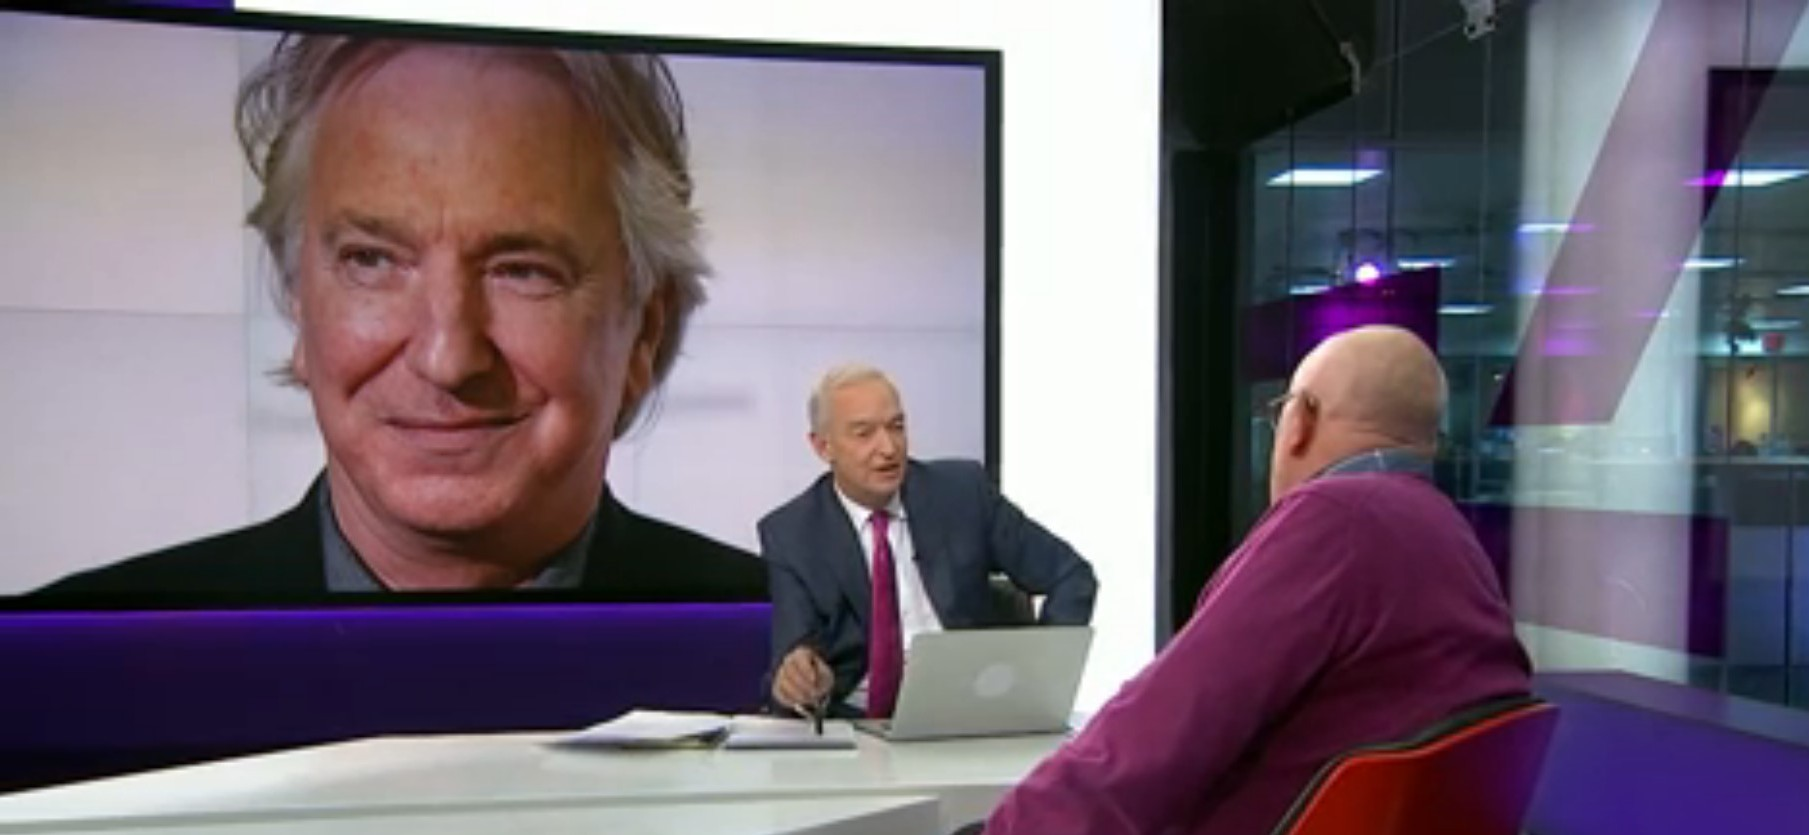 Jon Snow slammed for slipping 'I don't believe it' into interview with Richard Wilson about Alan Rickman